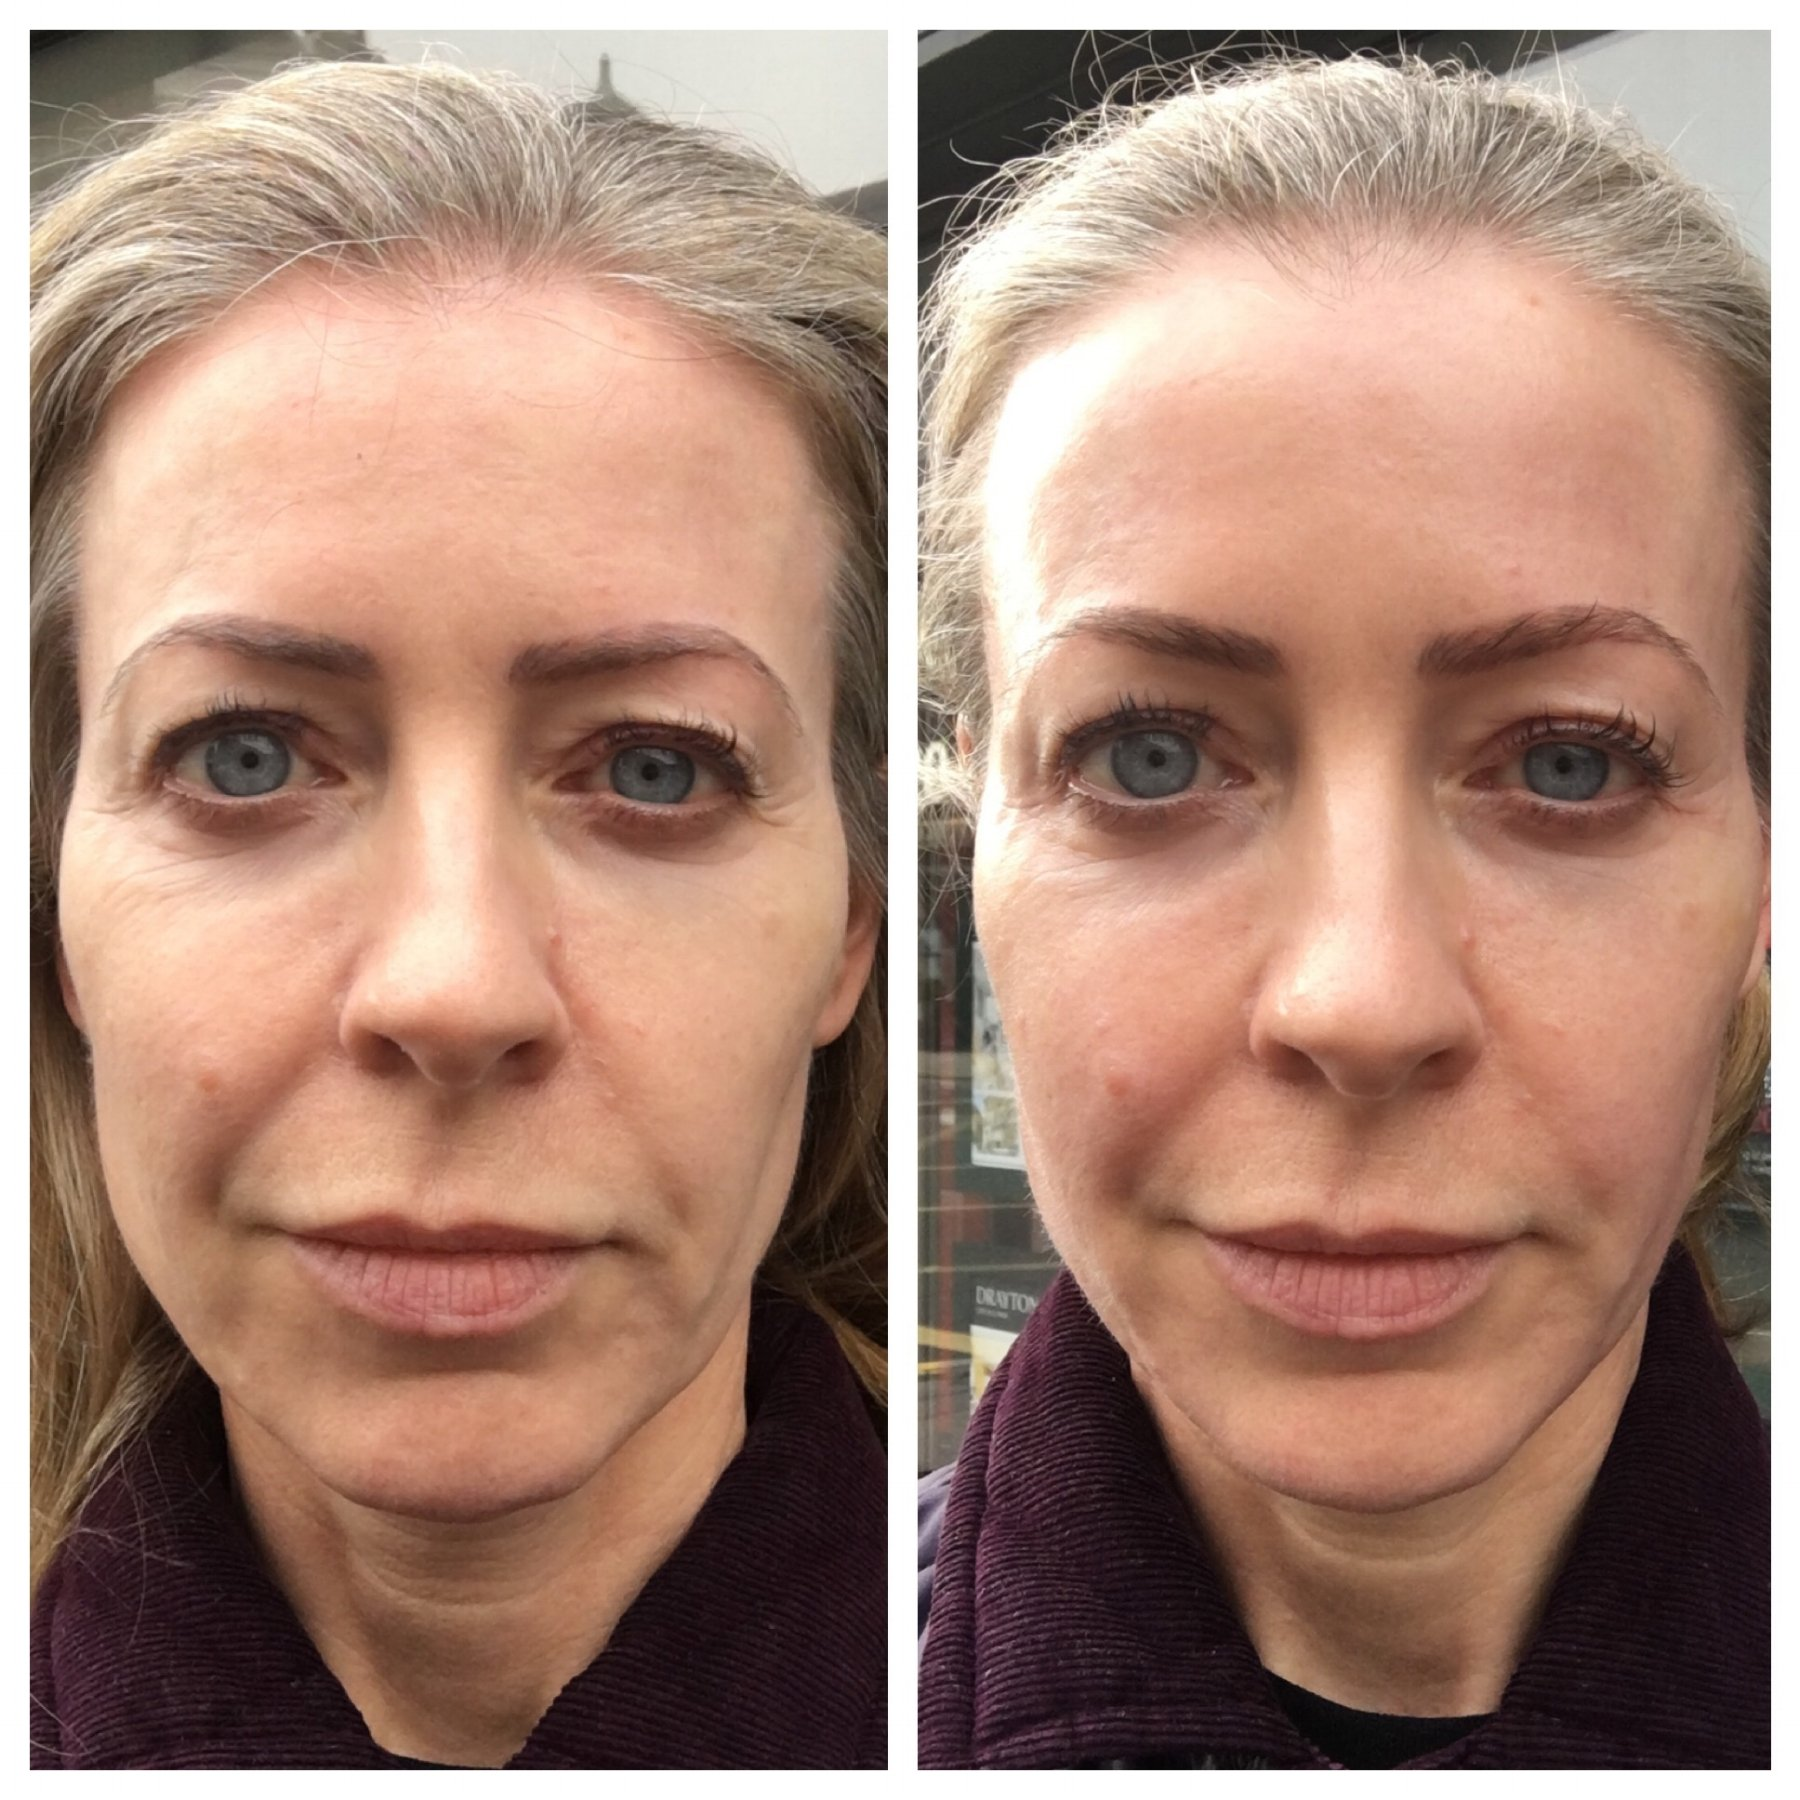 Before and after the Facegym workout - in merciless daylight